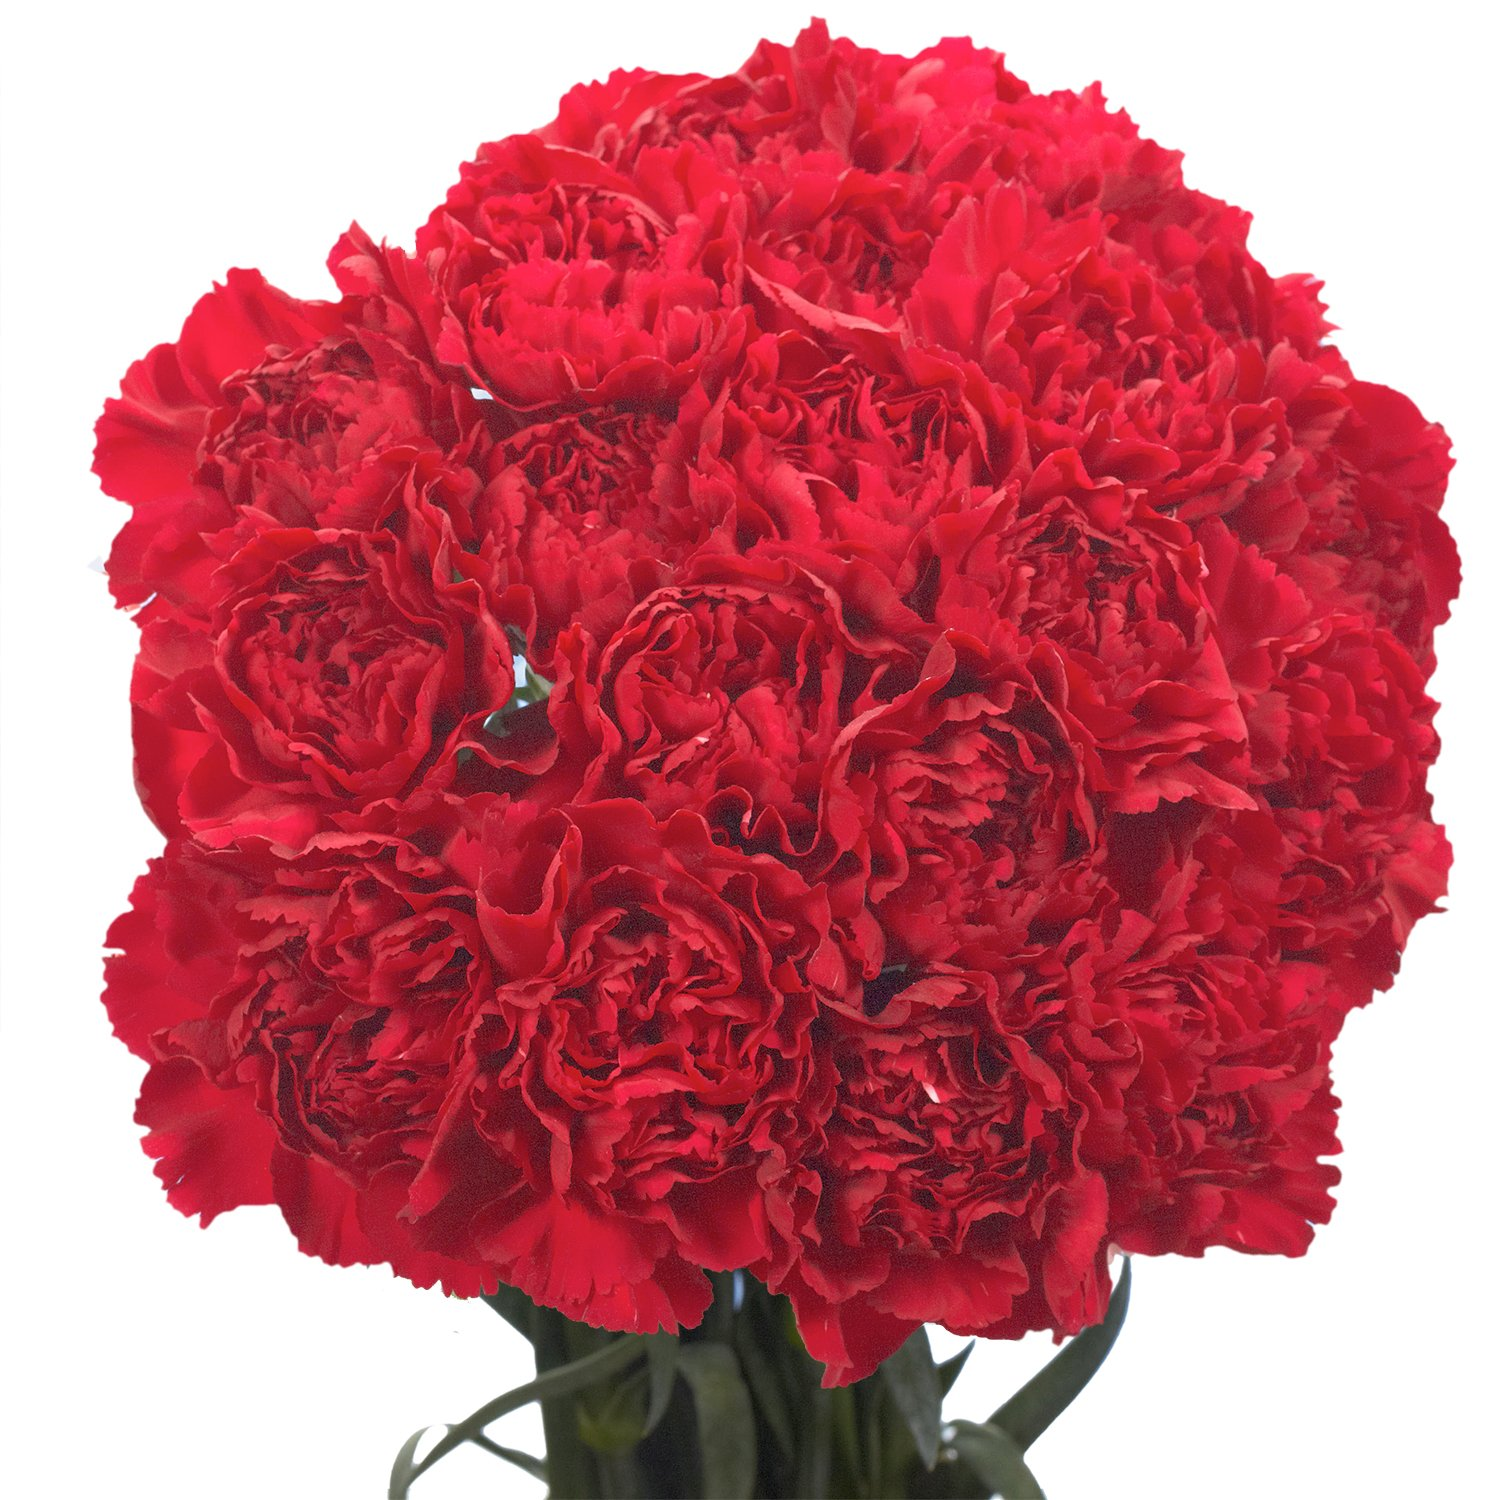 Cheap best valentine flowers find best valentine flowers deals on get quotations globalrose 100 fresh cut burgundy carnations for valentines day fresh flowers express delivery perfect izmirmasajfo